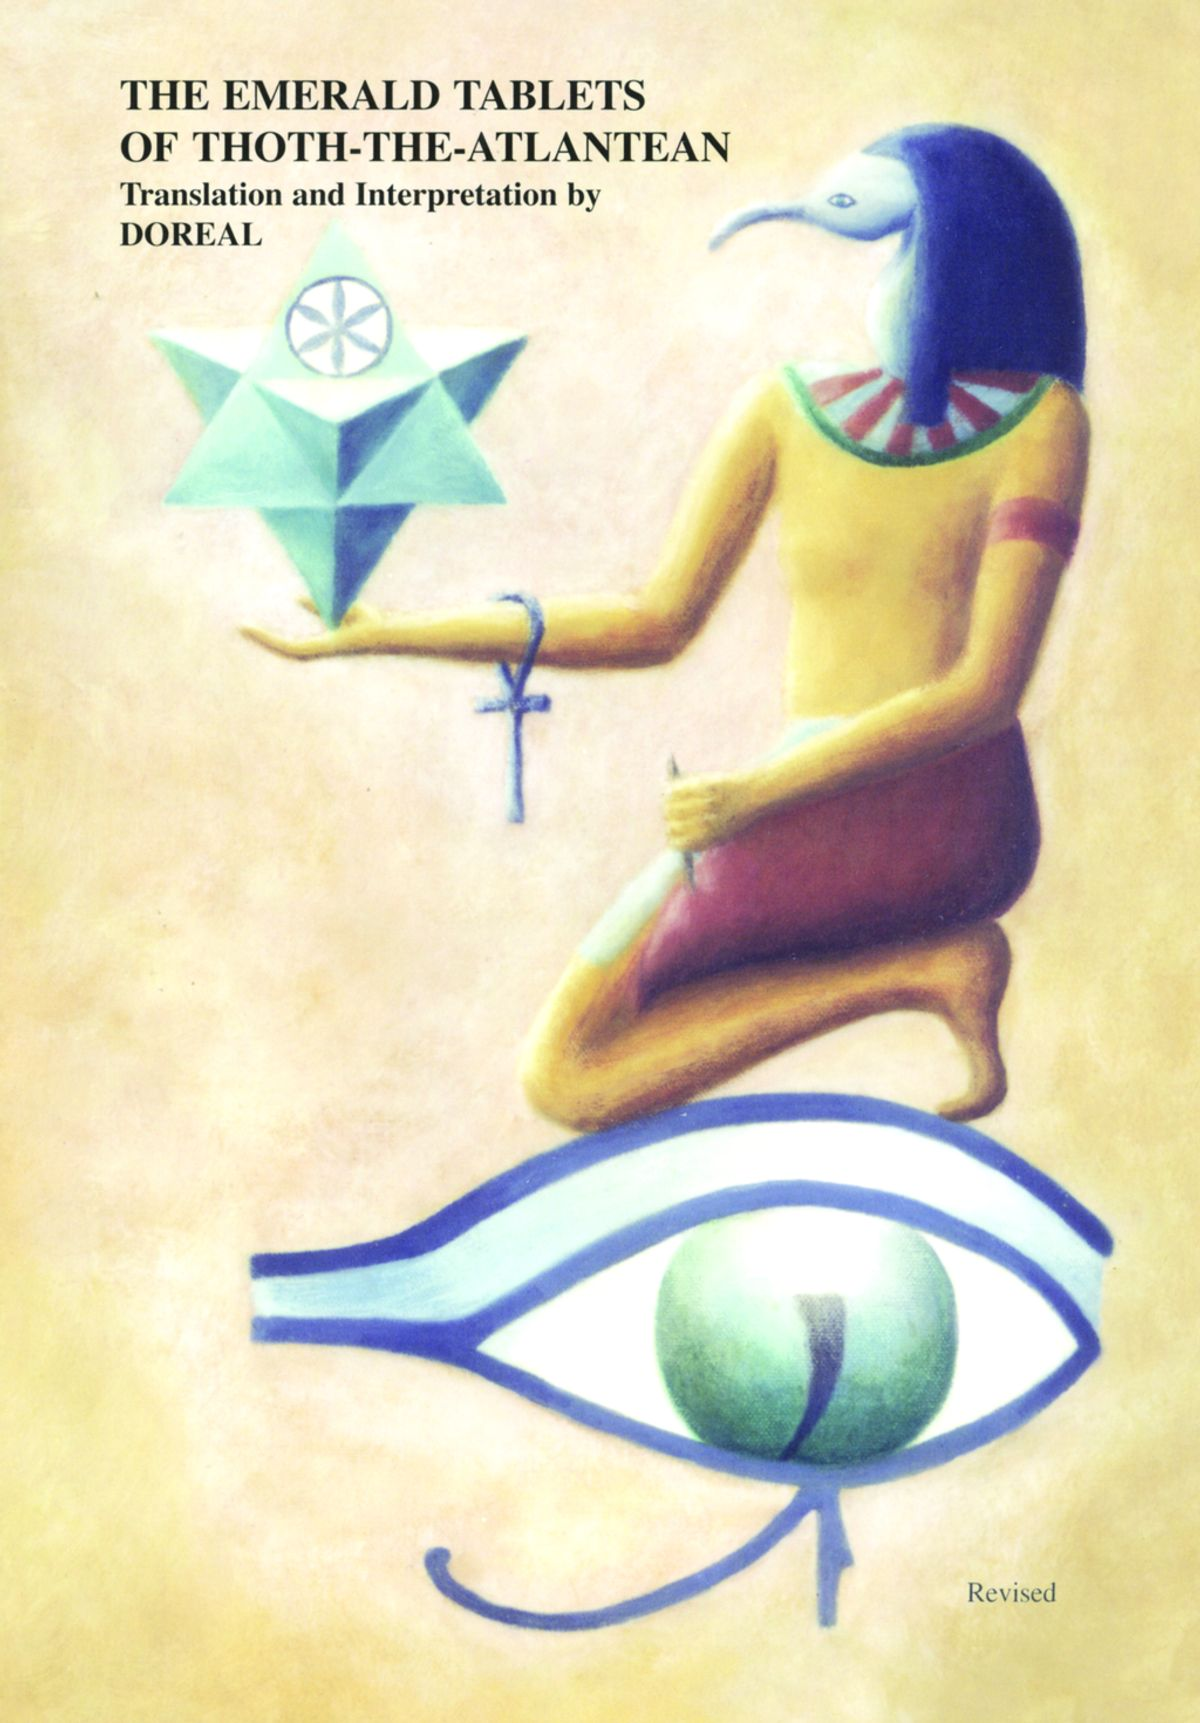 the-emerald-tablets-of-thoth-the-atlantean.jpg